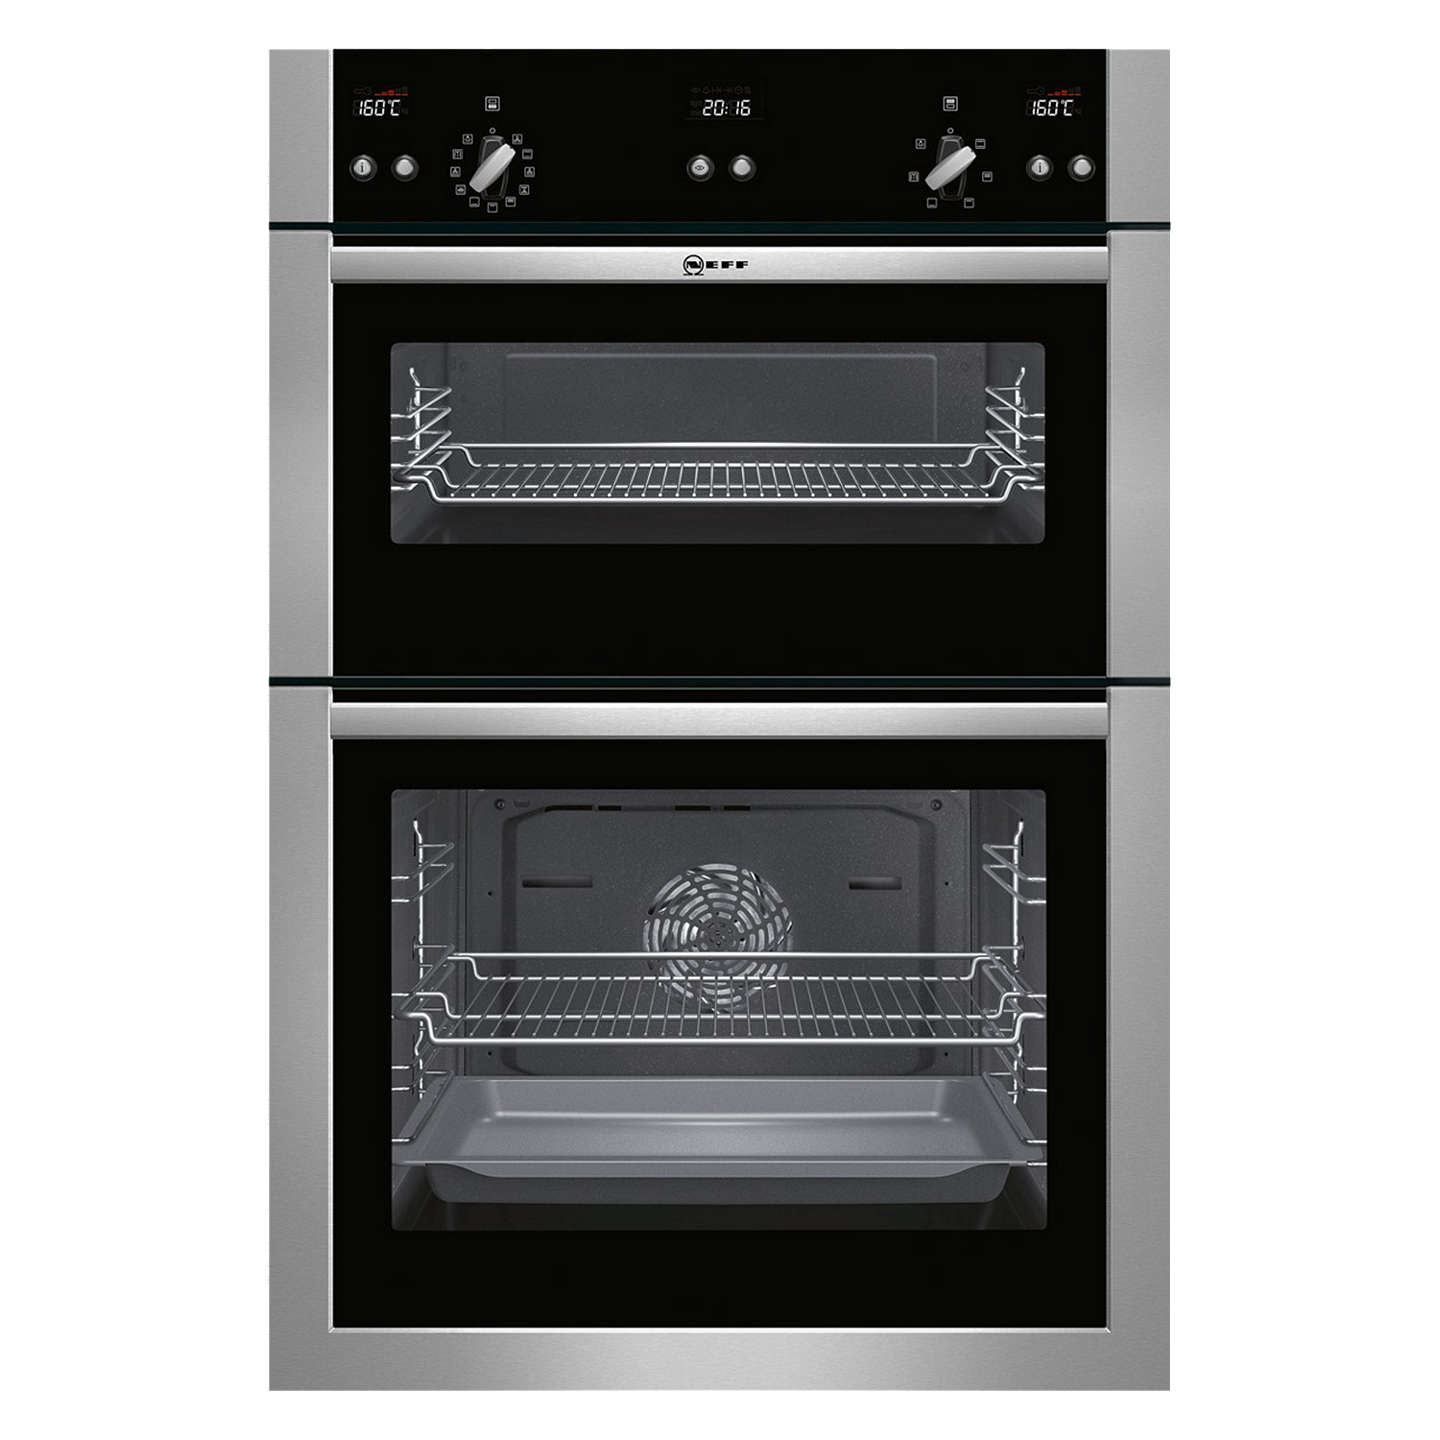 neff u15e52n5gb double built in electric oven stainless steel at rh johnlewis com Socket Wiring Diagram Omega Alarm Wiring Diagrams